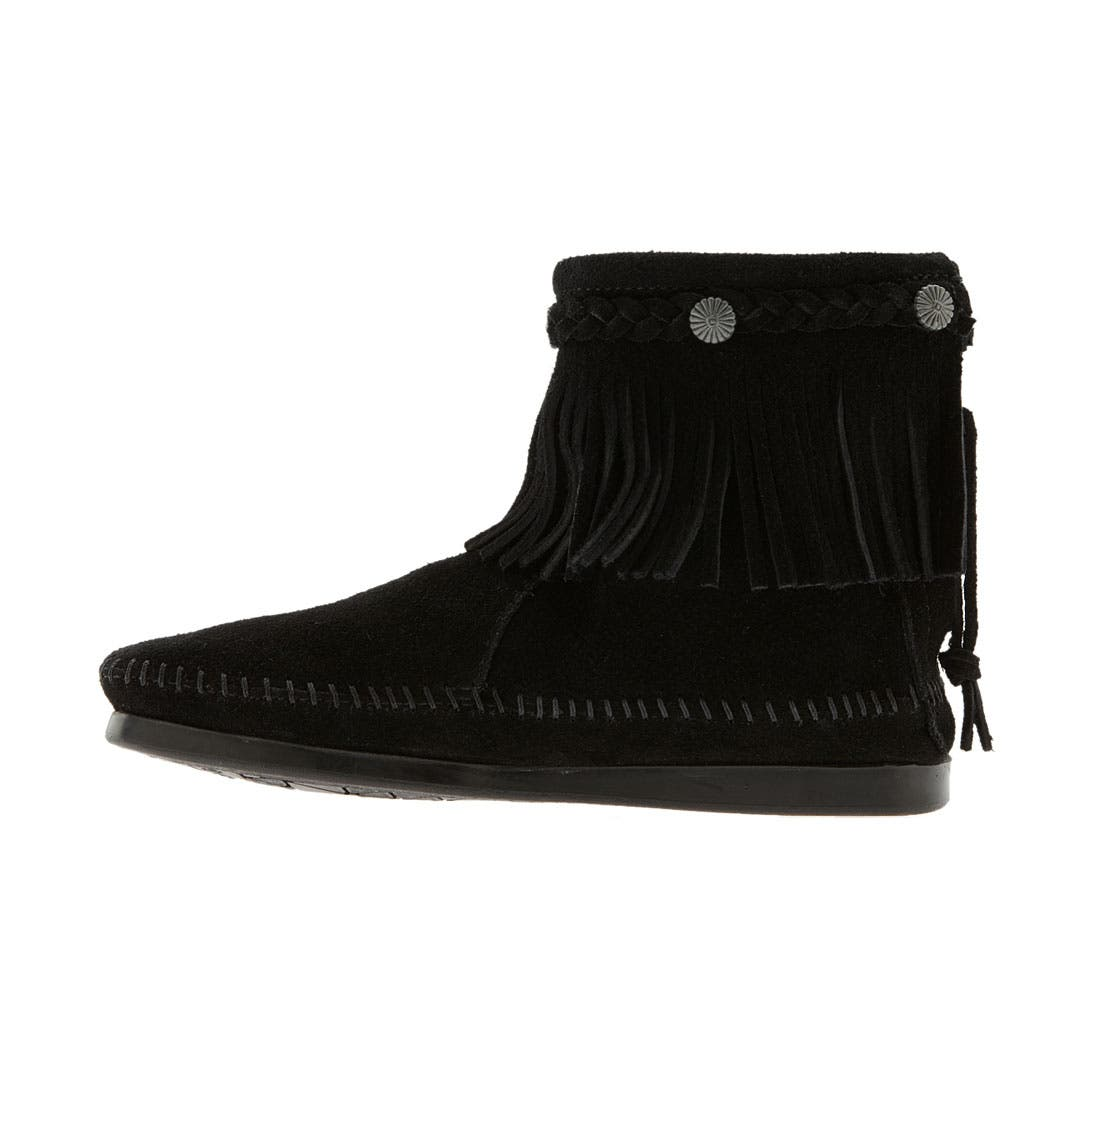 MINNETONKA, Fringed Moccasin Bootie, Alternate thumbnail 4, color, BLACK